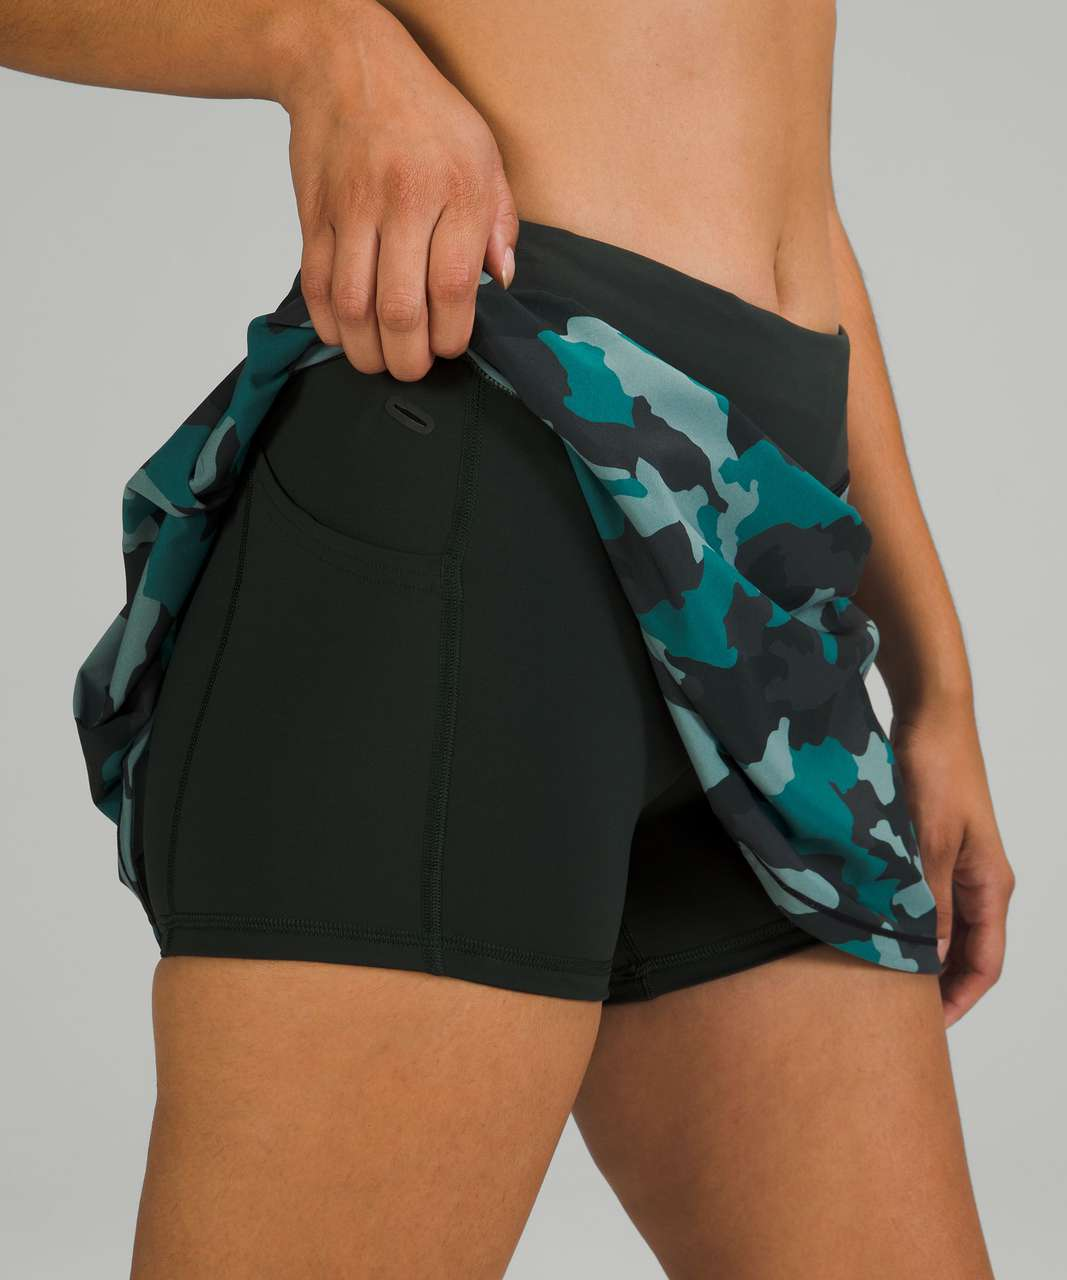 Lululemon Pace Rival Mid-Rise Skirt *Long - Heritage 365 Camo Tidewater Teal Multi / Rainforest Green